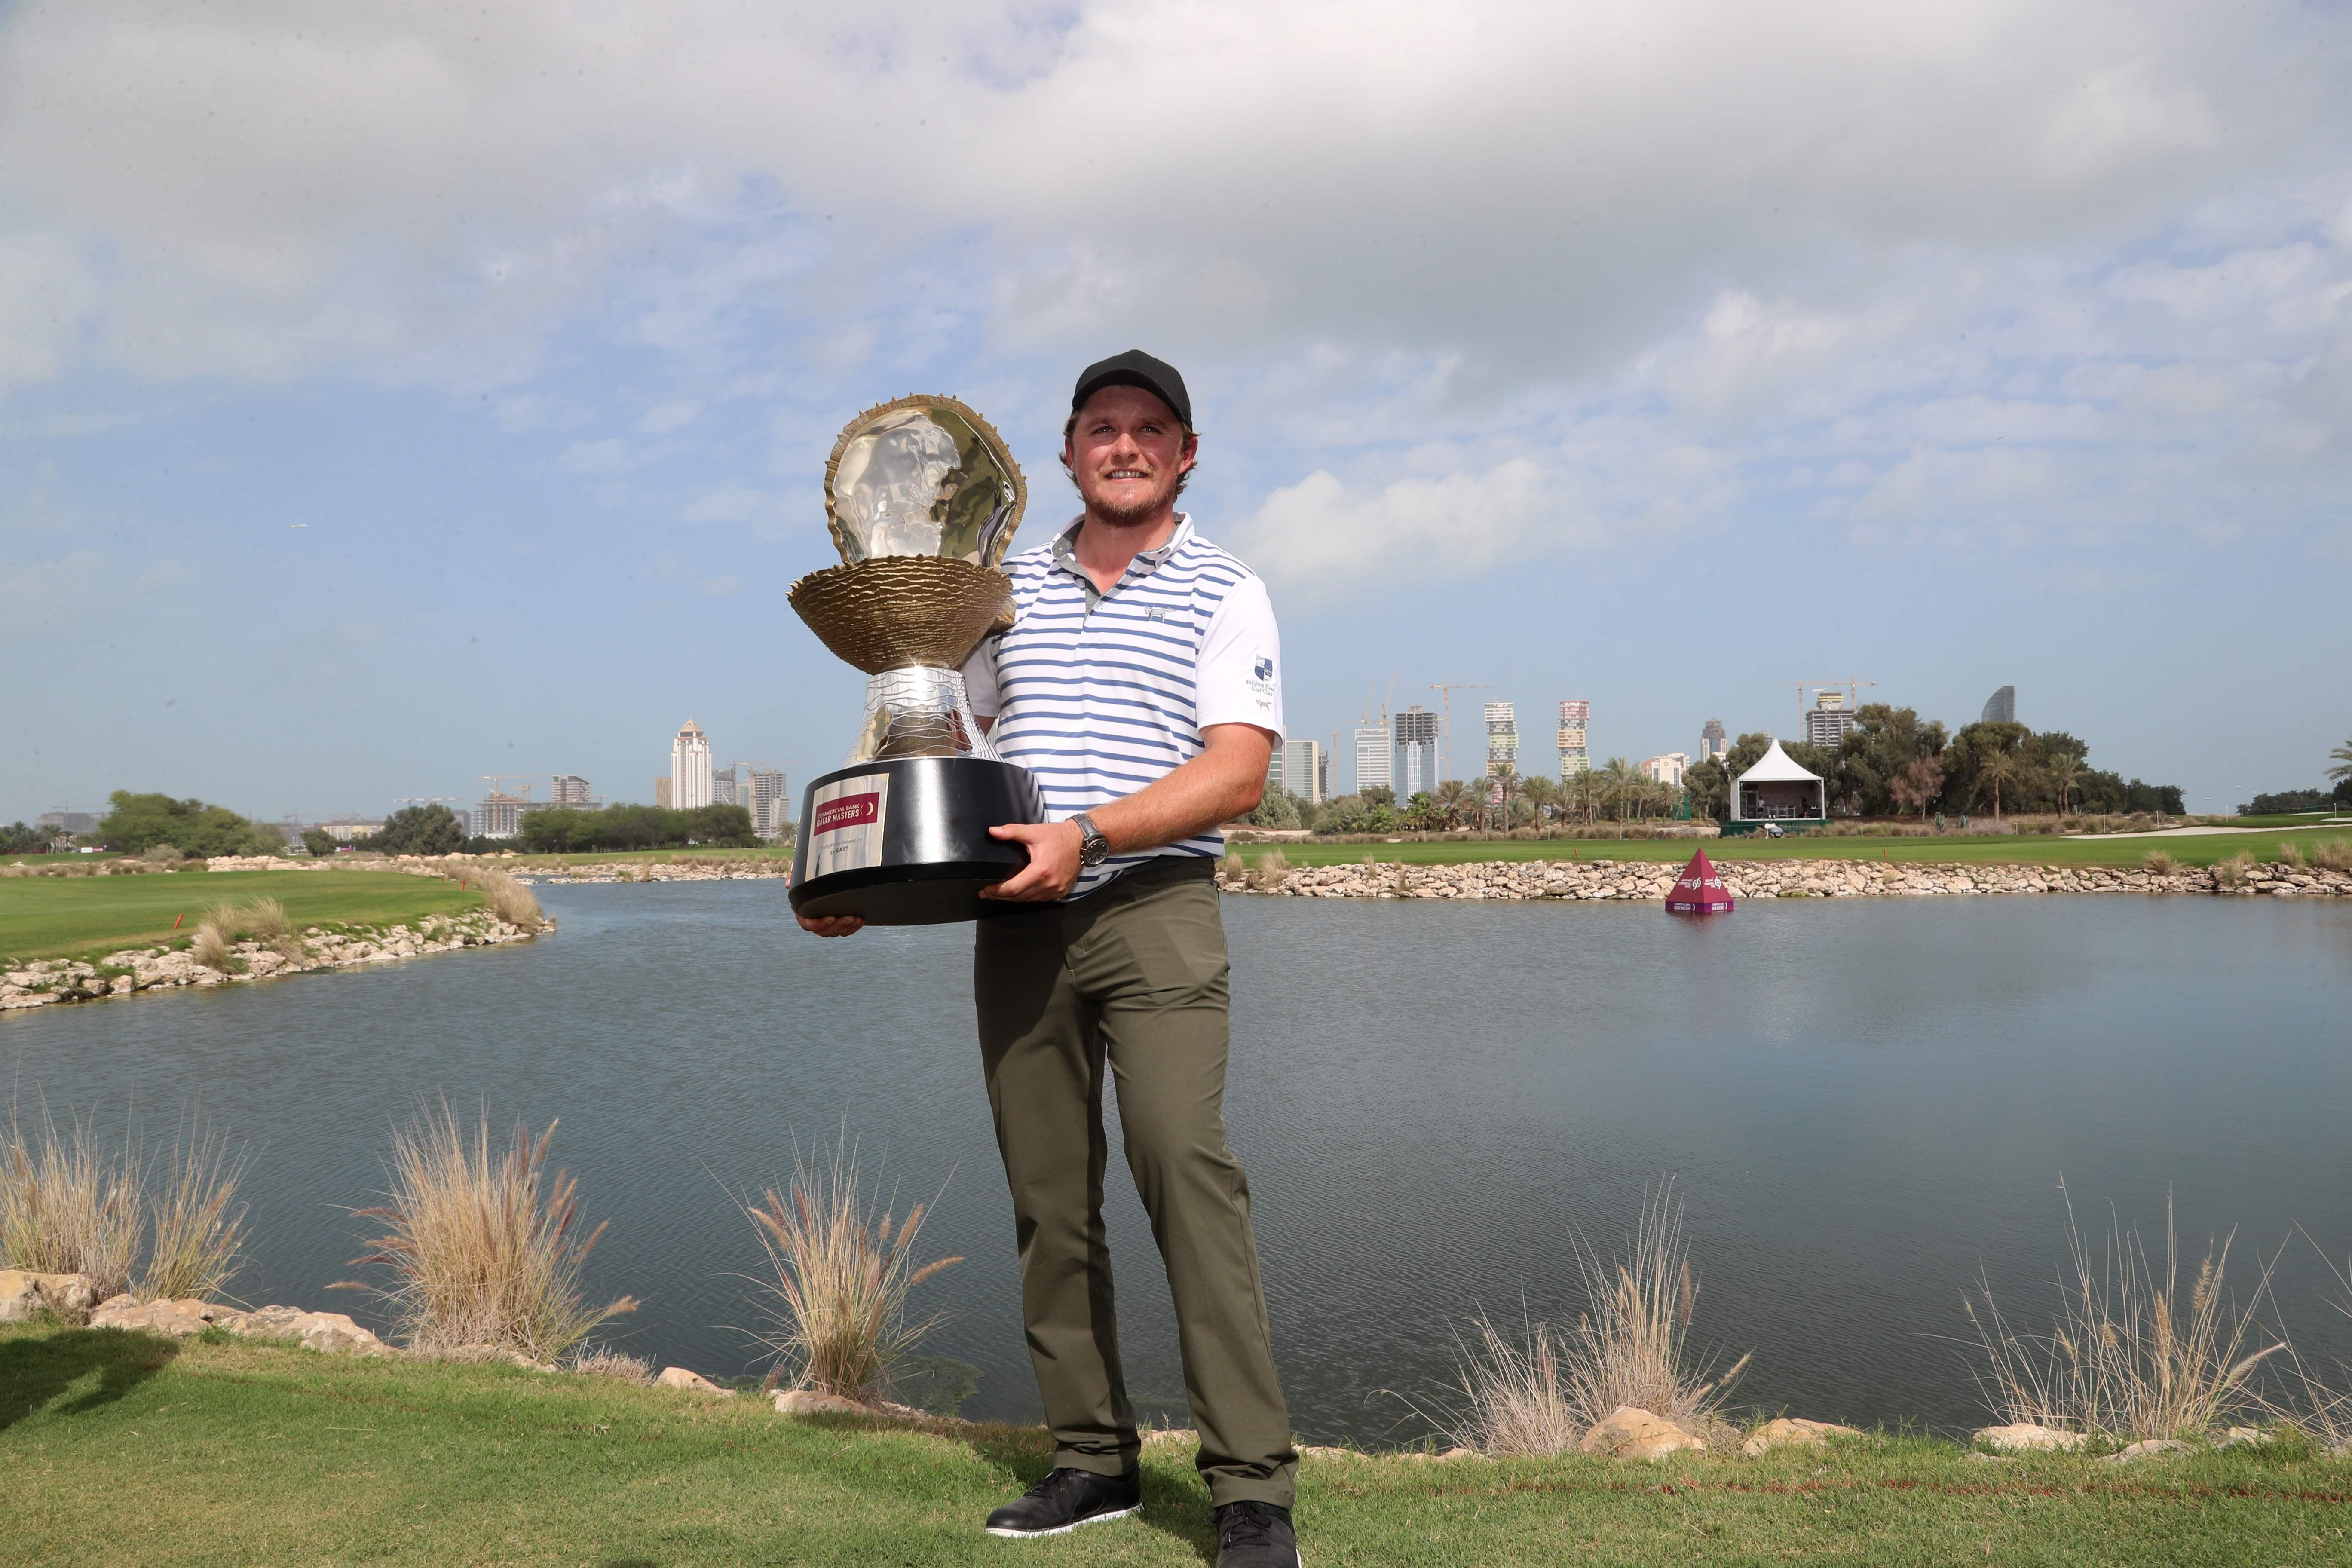 Eddie Pepperell lifts the trophy in Qatar